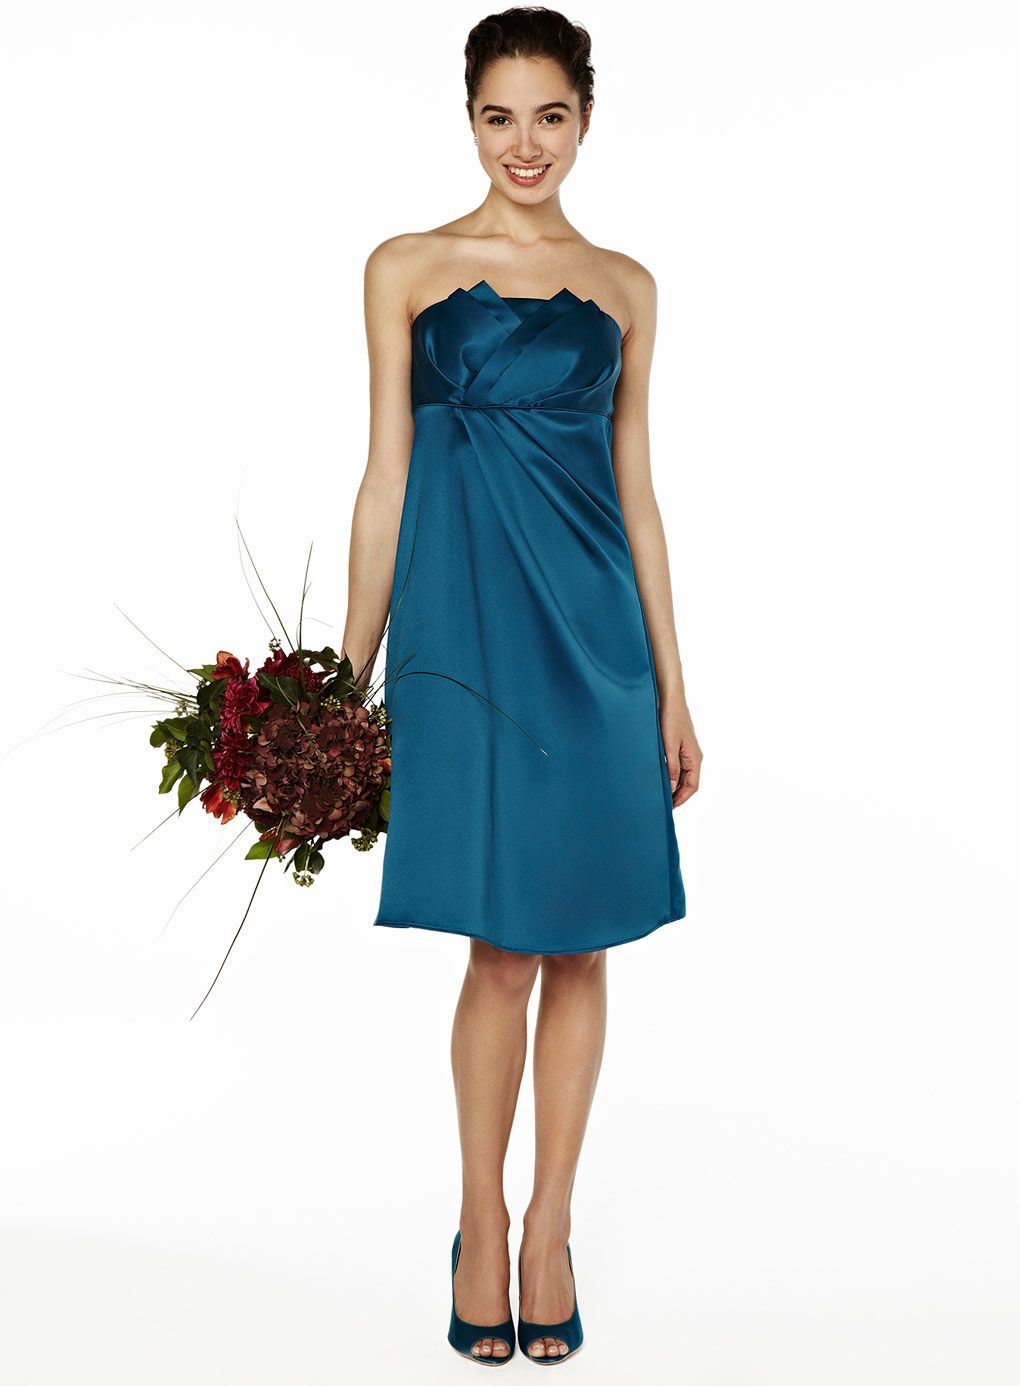 Short dress teal bridesmaid dresses bridesmaid dresses teal bridesmaid dresses ombrellifo Images